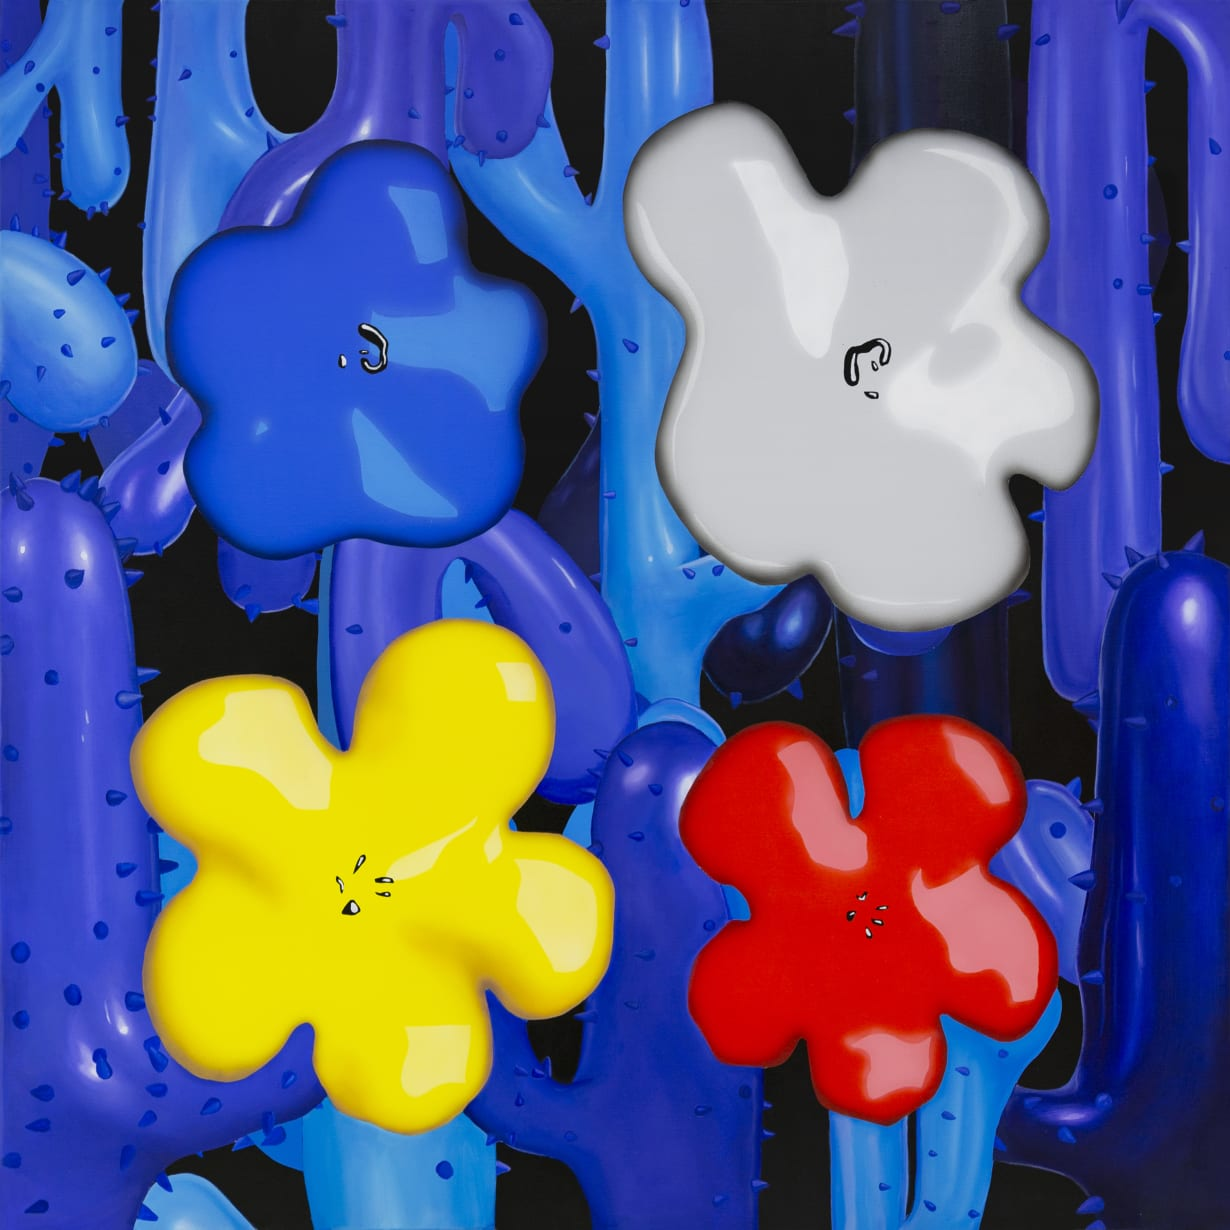 Flower Study from Lobster Land Museum (Blue, White, Yellow Red), 2020Oil and acrylic on canvas120 cm x 120 cm ENQUIRE